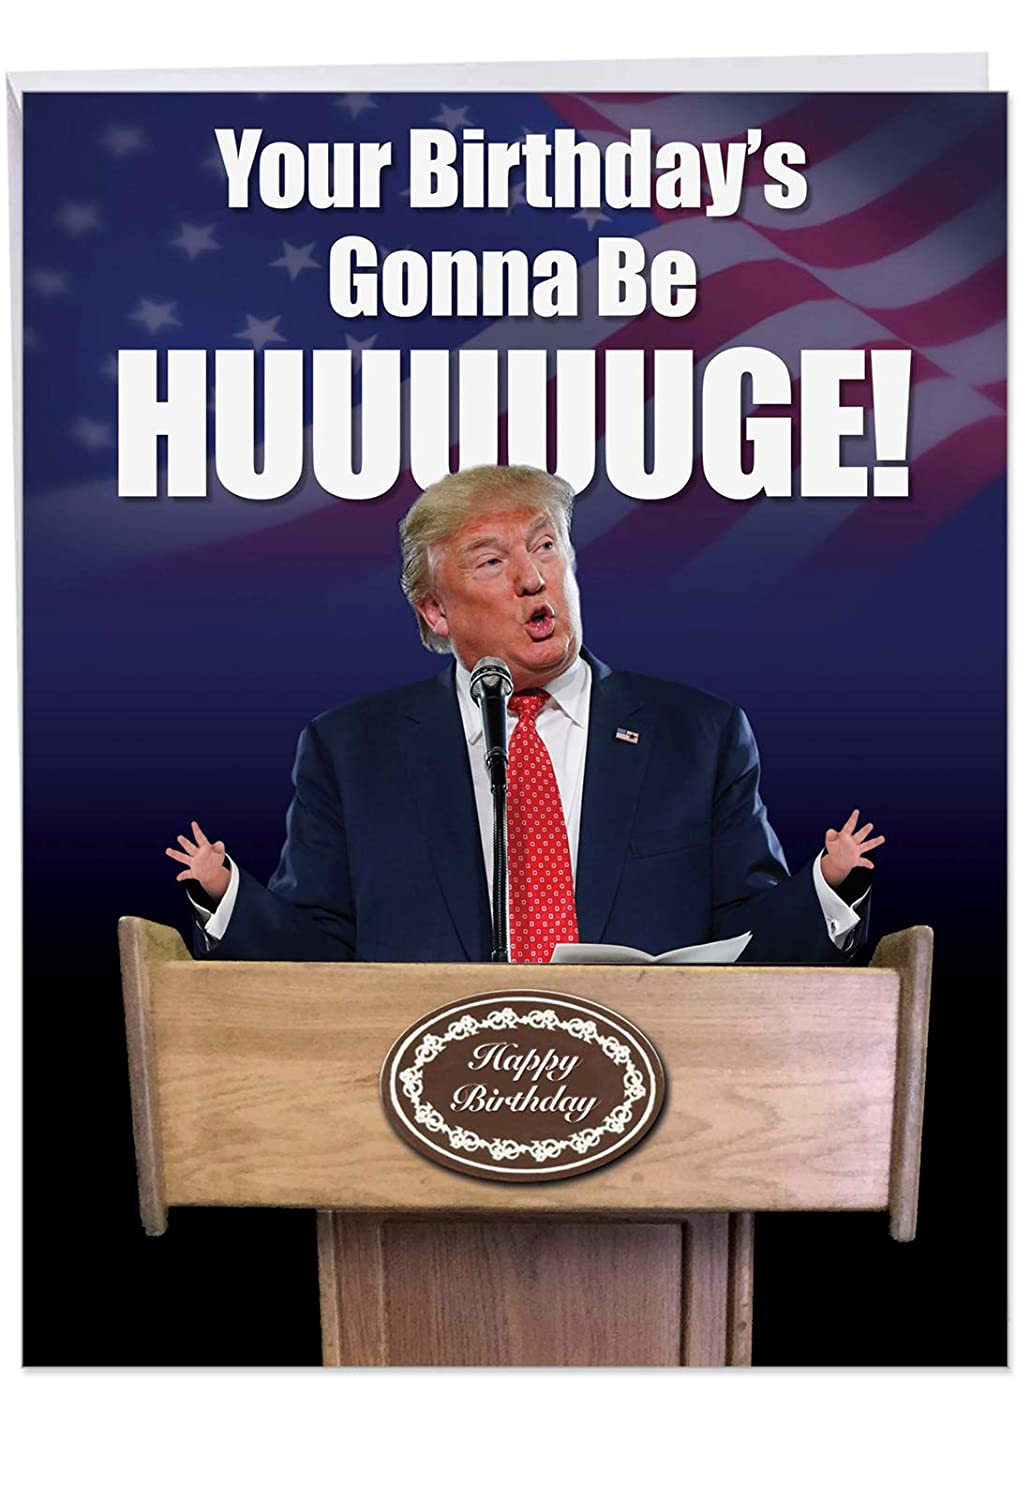 """Funny President Trump Birthday Card 8.5 x 11 Inch - Jumbo""""Trump Huuuge"""" Happy Birthday Greeting Cards - Hilarious Donald Trump Saying Congratulations! (With Envelope) - J2557BDG"""